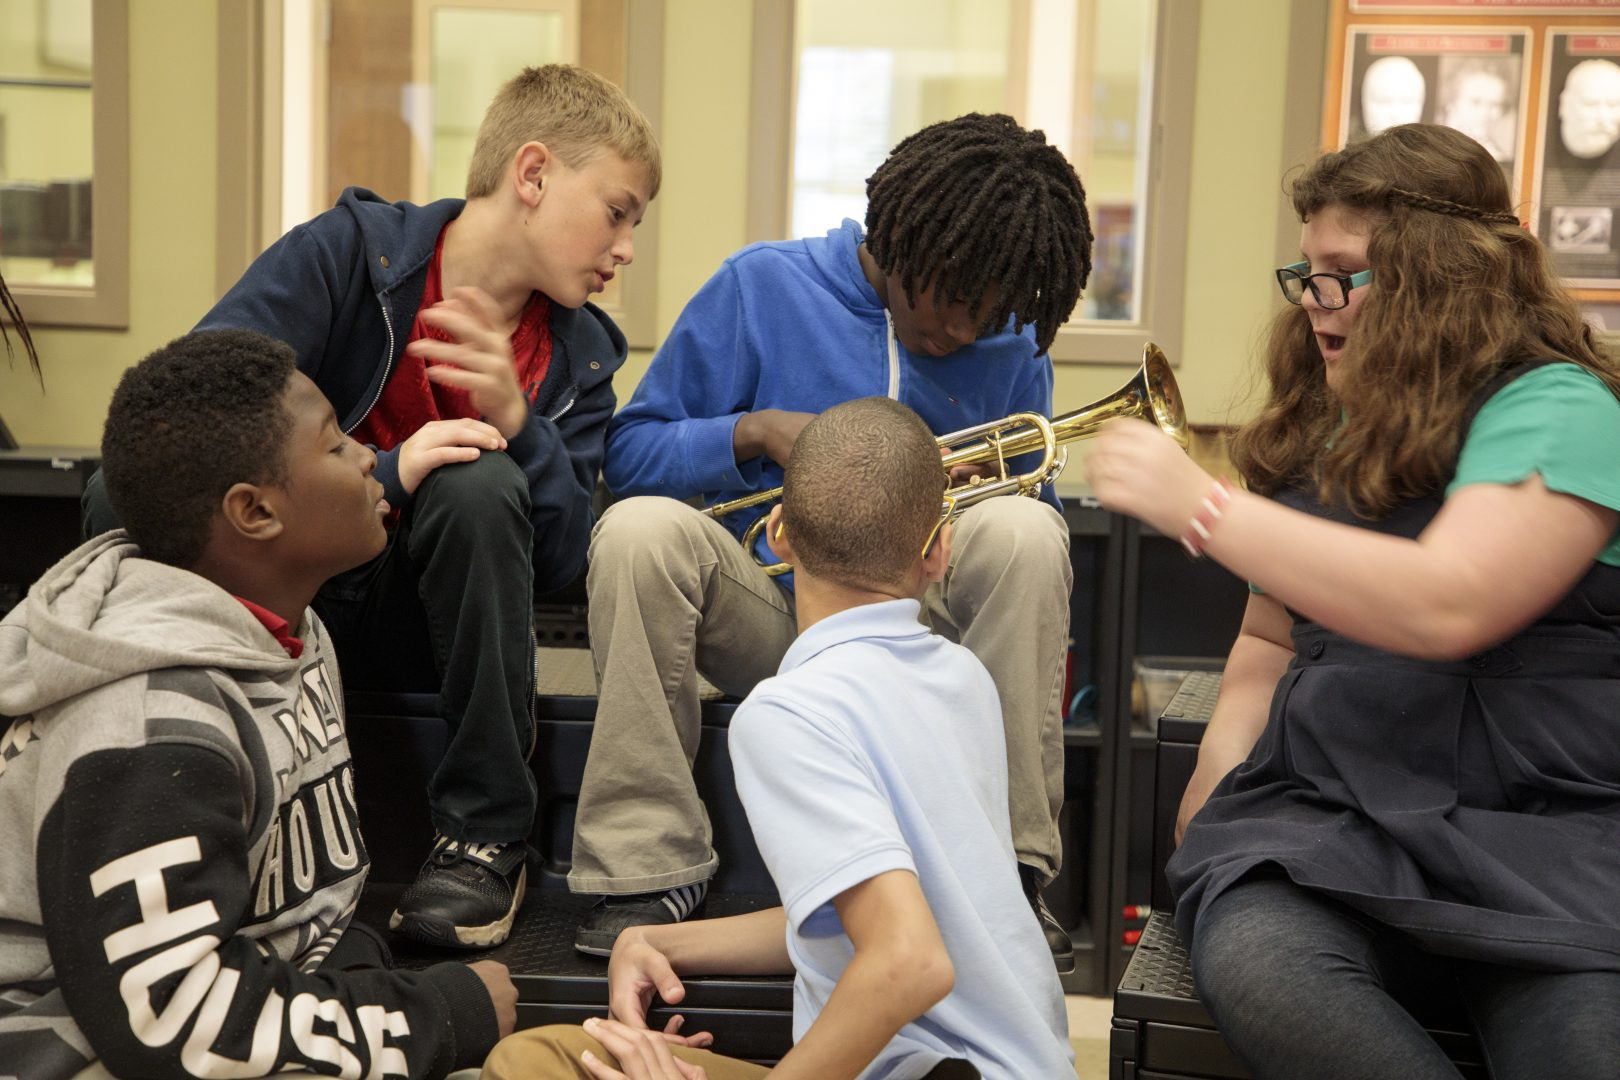 a group of students sitting together in a music classroom talking. one of them holds a trumpet.